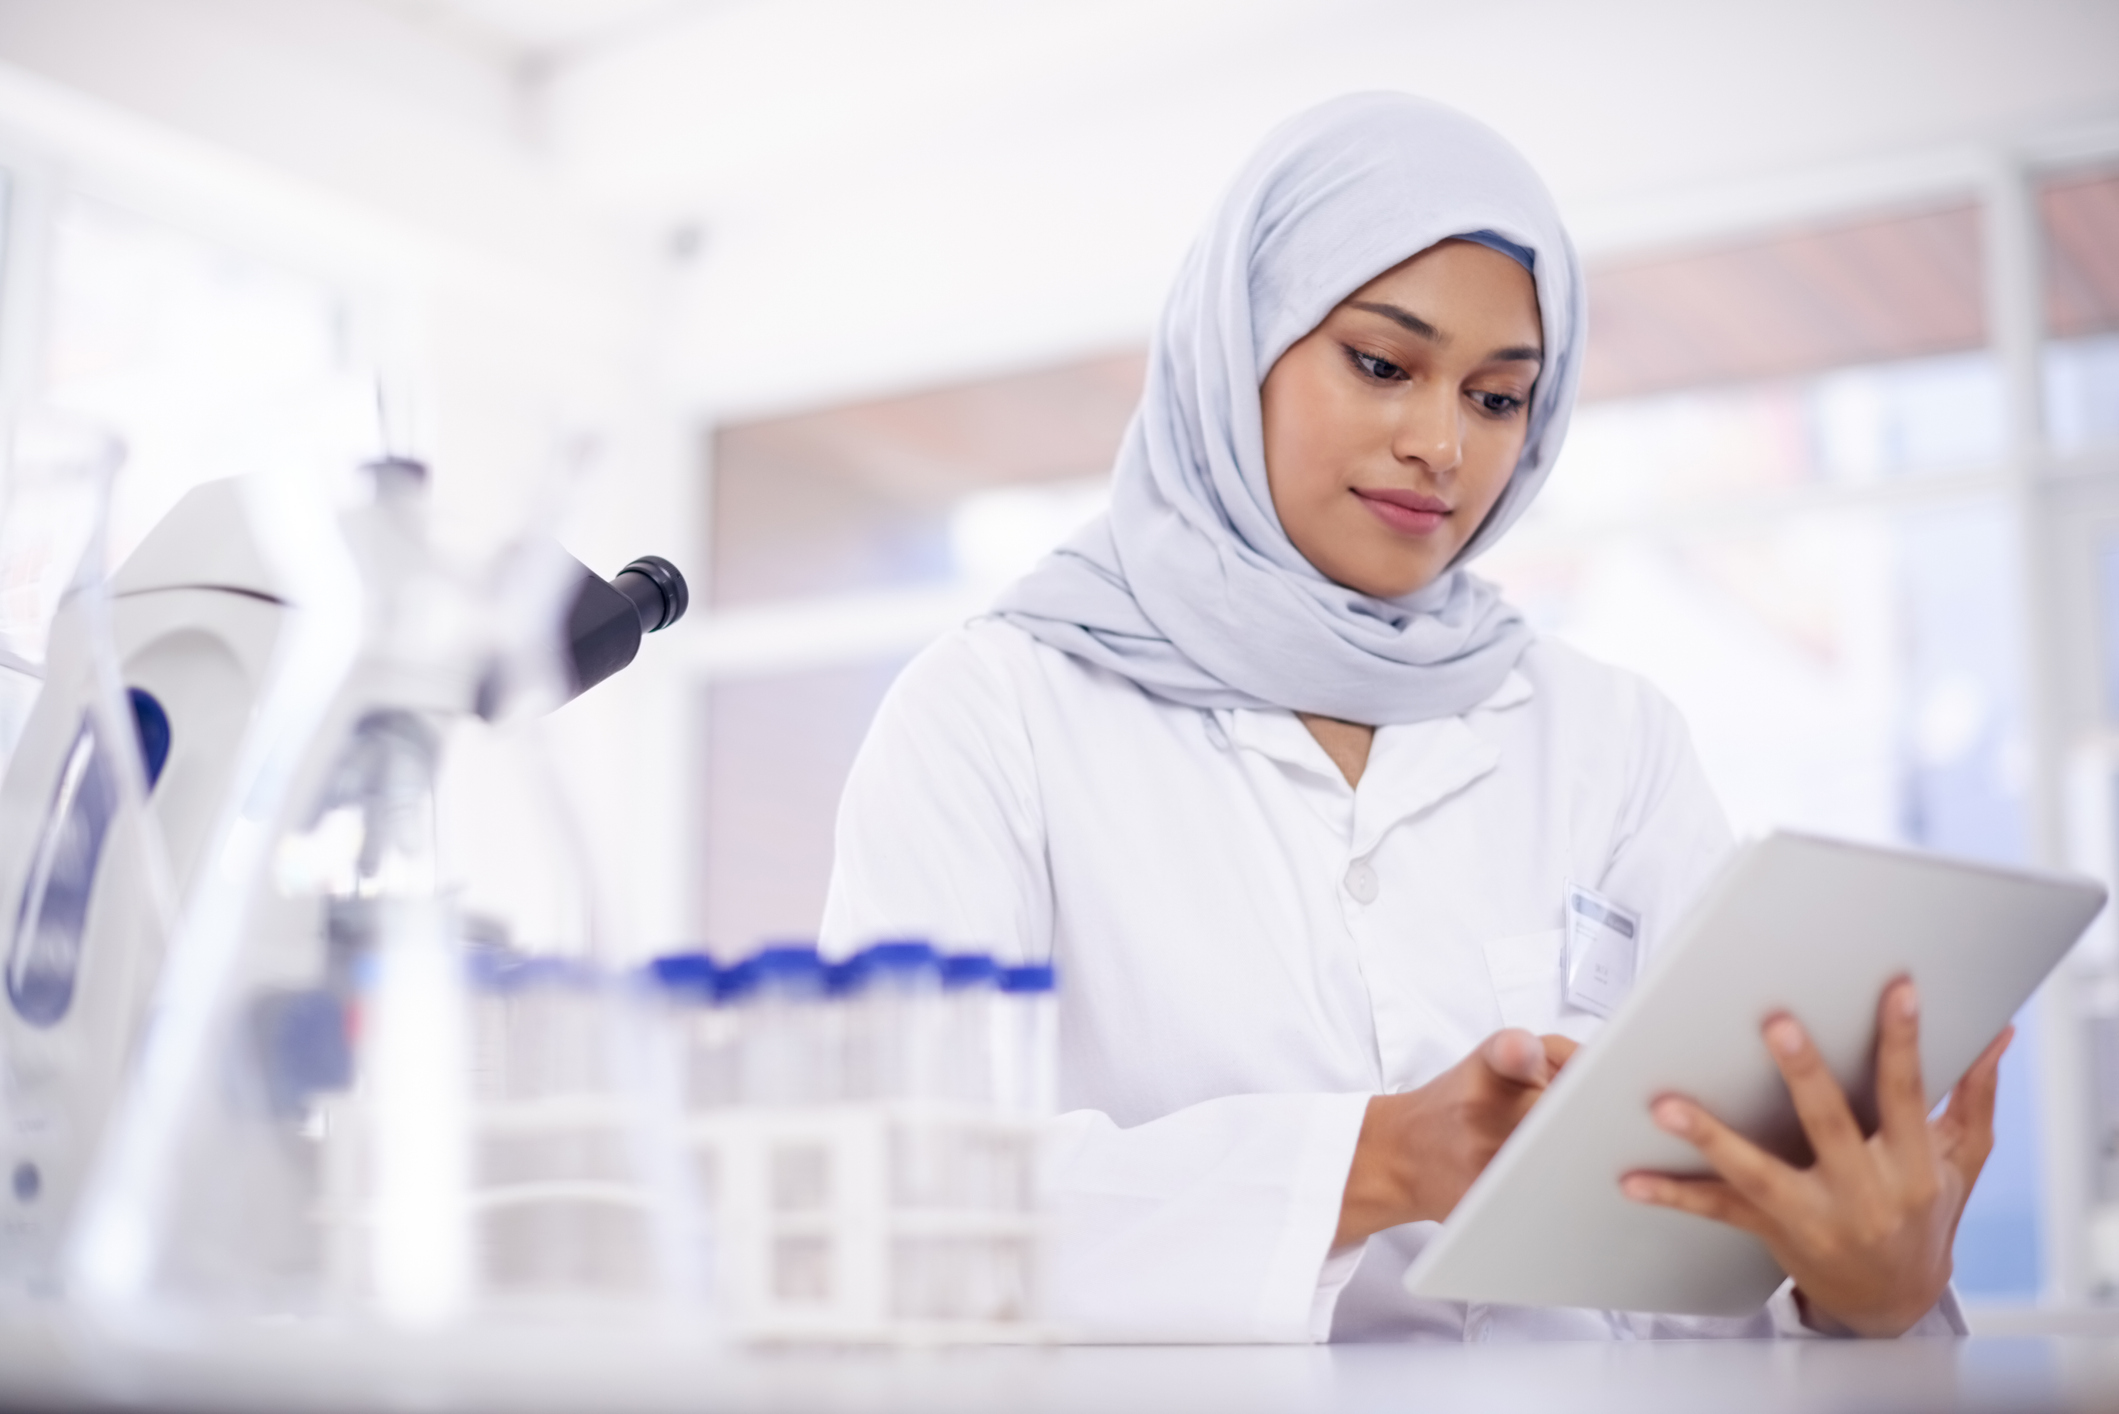 Shot of a young scientist using a digital tablet in a lab